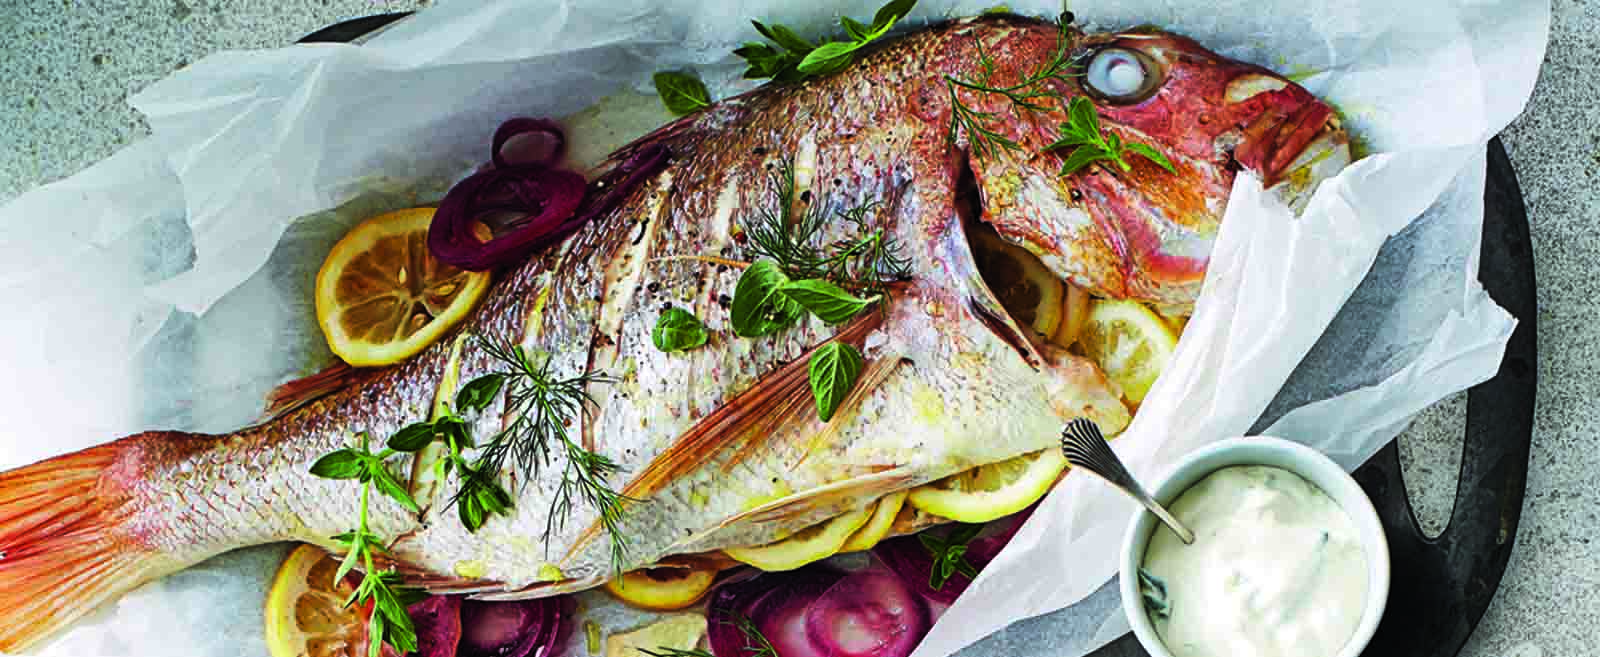 Lemon and Dill Snapper